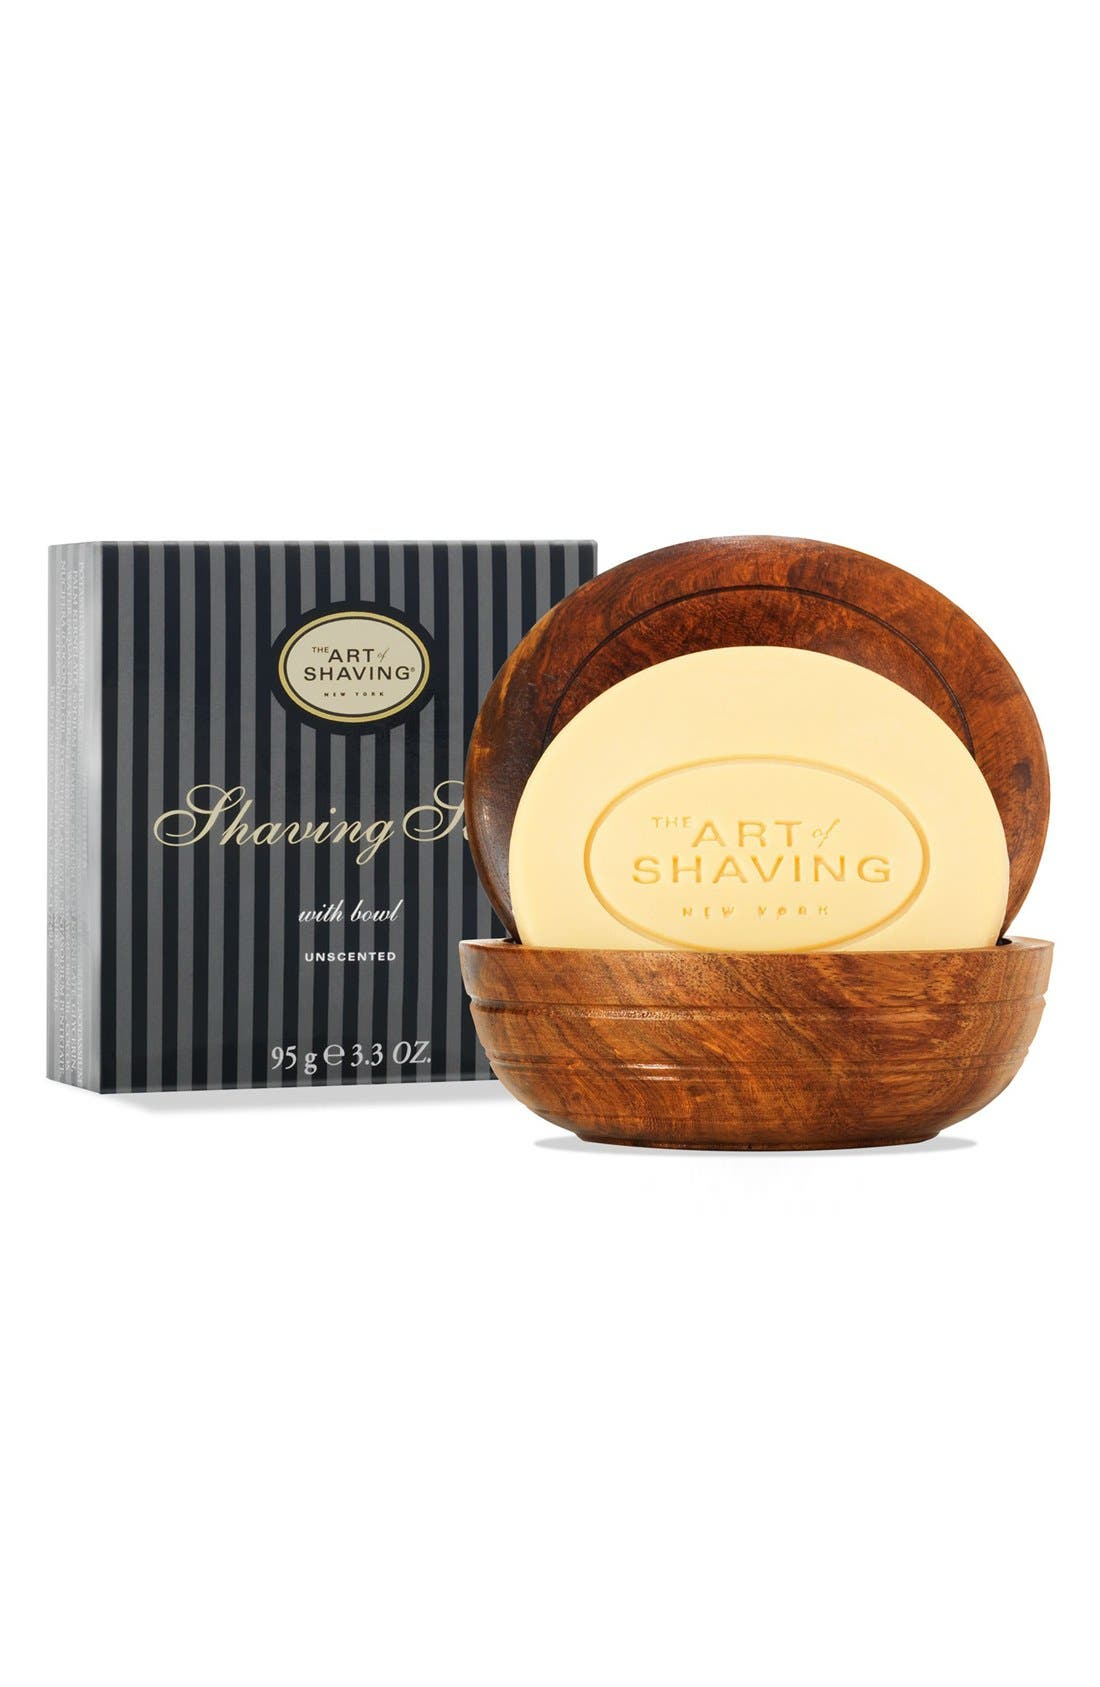 Unscented Shaving Soap with Bowl,                             Main thumbnail 1, color,                             000